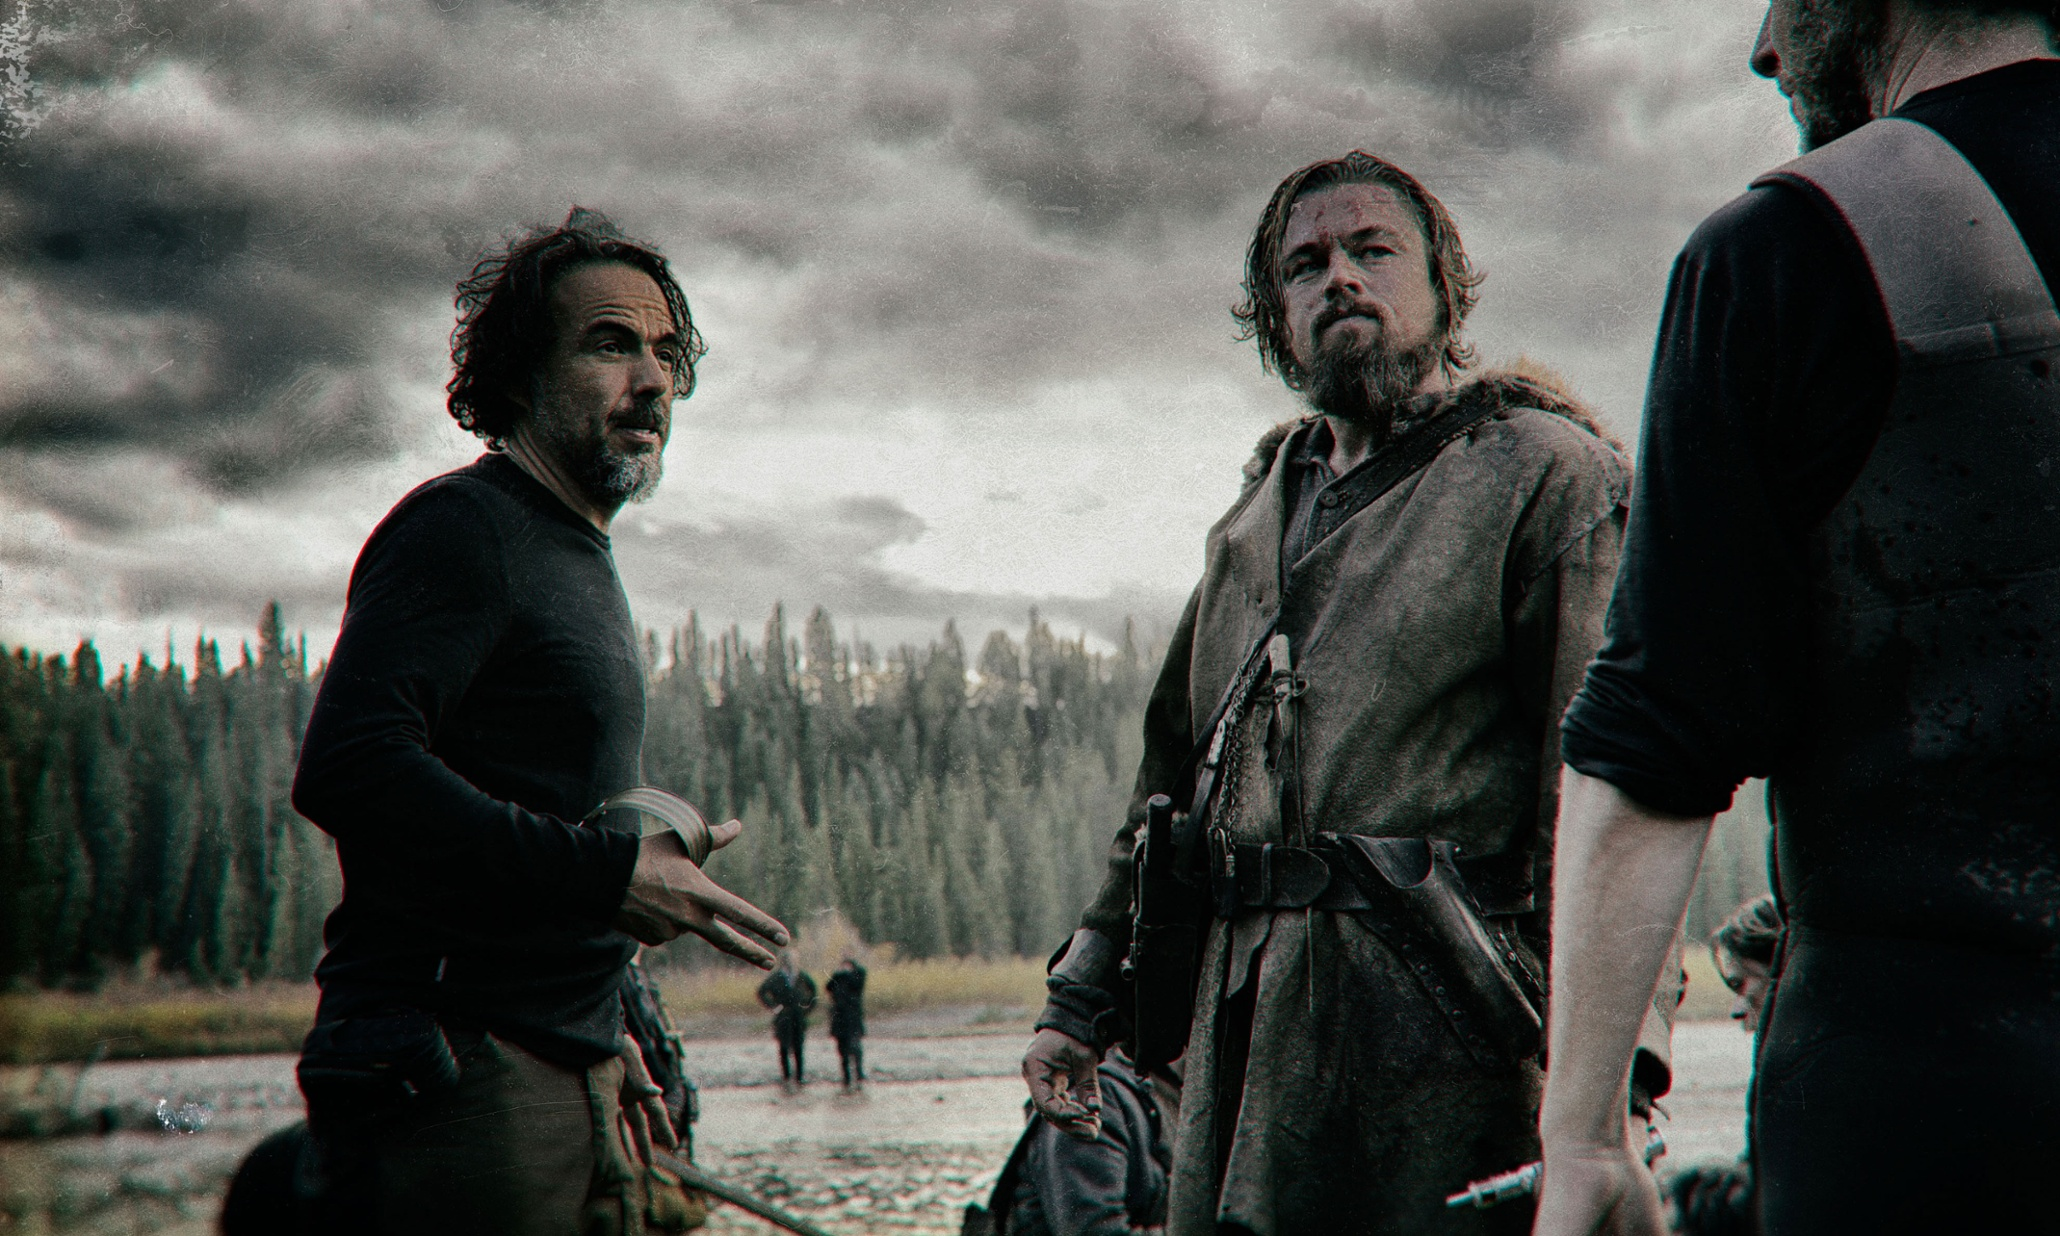 DiCaprio, filming The Revenant with Alejandro González Iñárritu in Calgary, Canada. Photo: The Guardian.